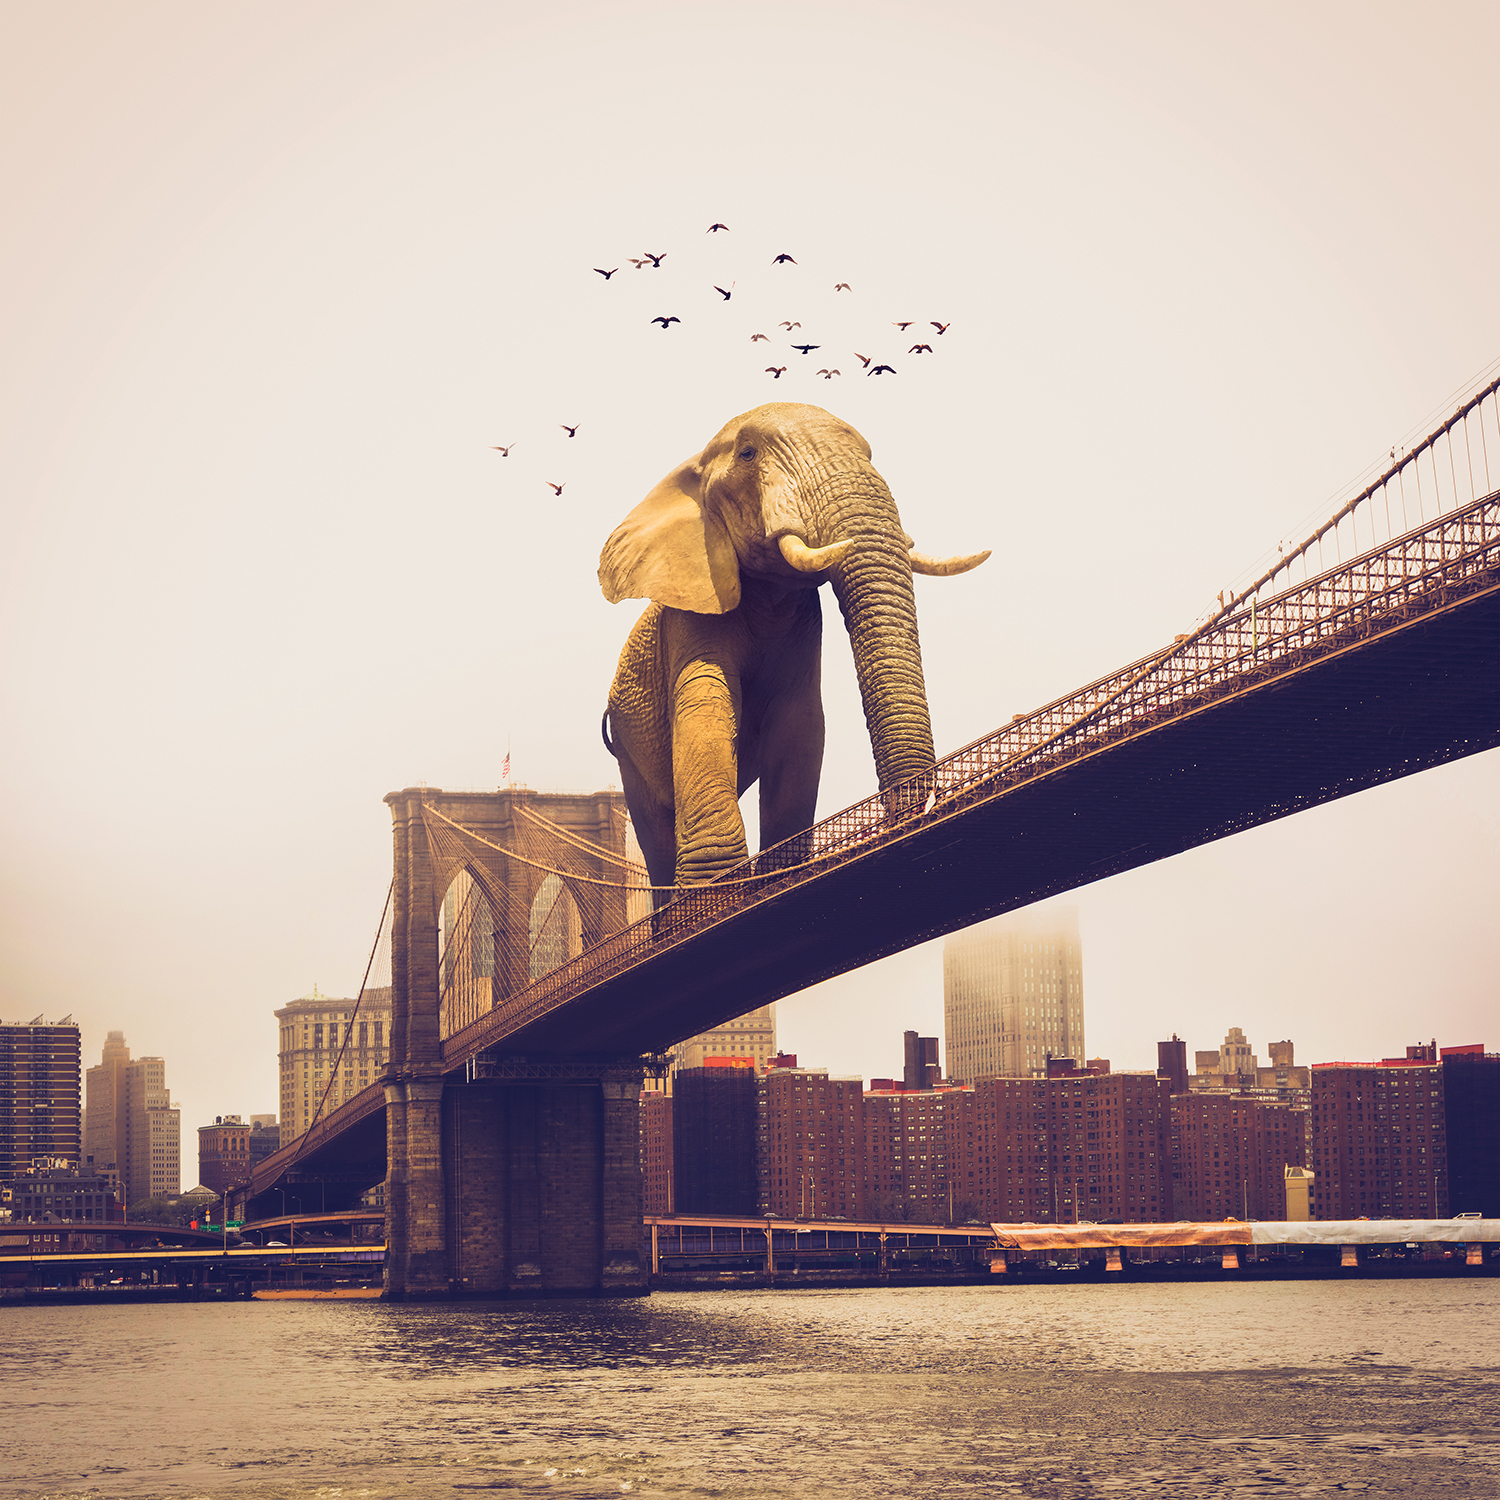 a giant elephant crossing the brooklyn bridge with a flock of birds flying nearby